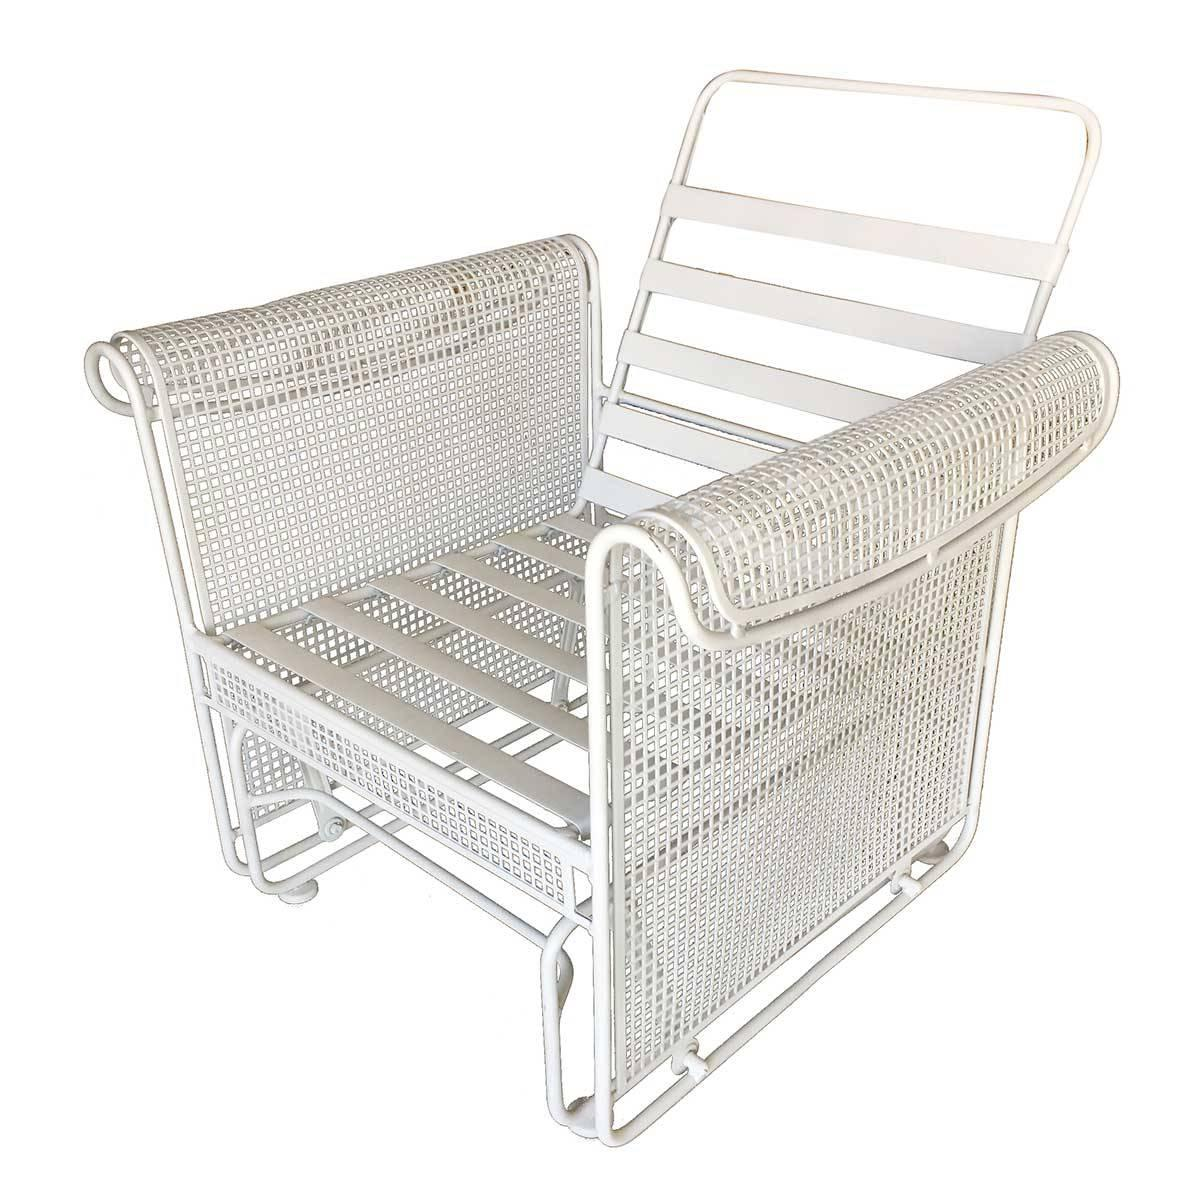 Lounge Chair Patio Woodard Mesh Outdoor Patio Side Glider Rocking Lounge Chair